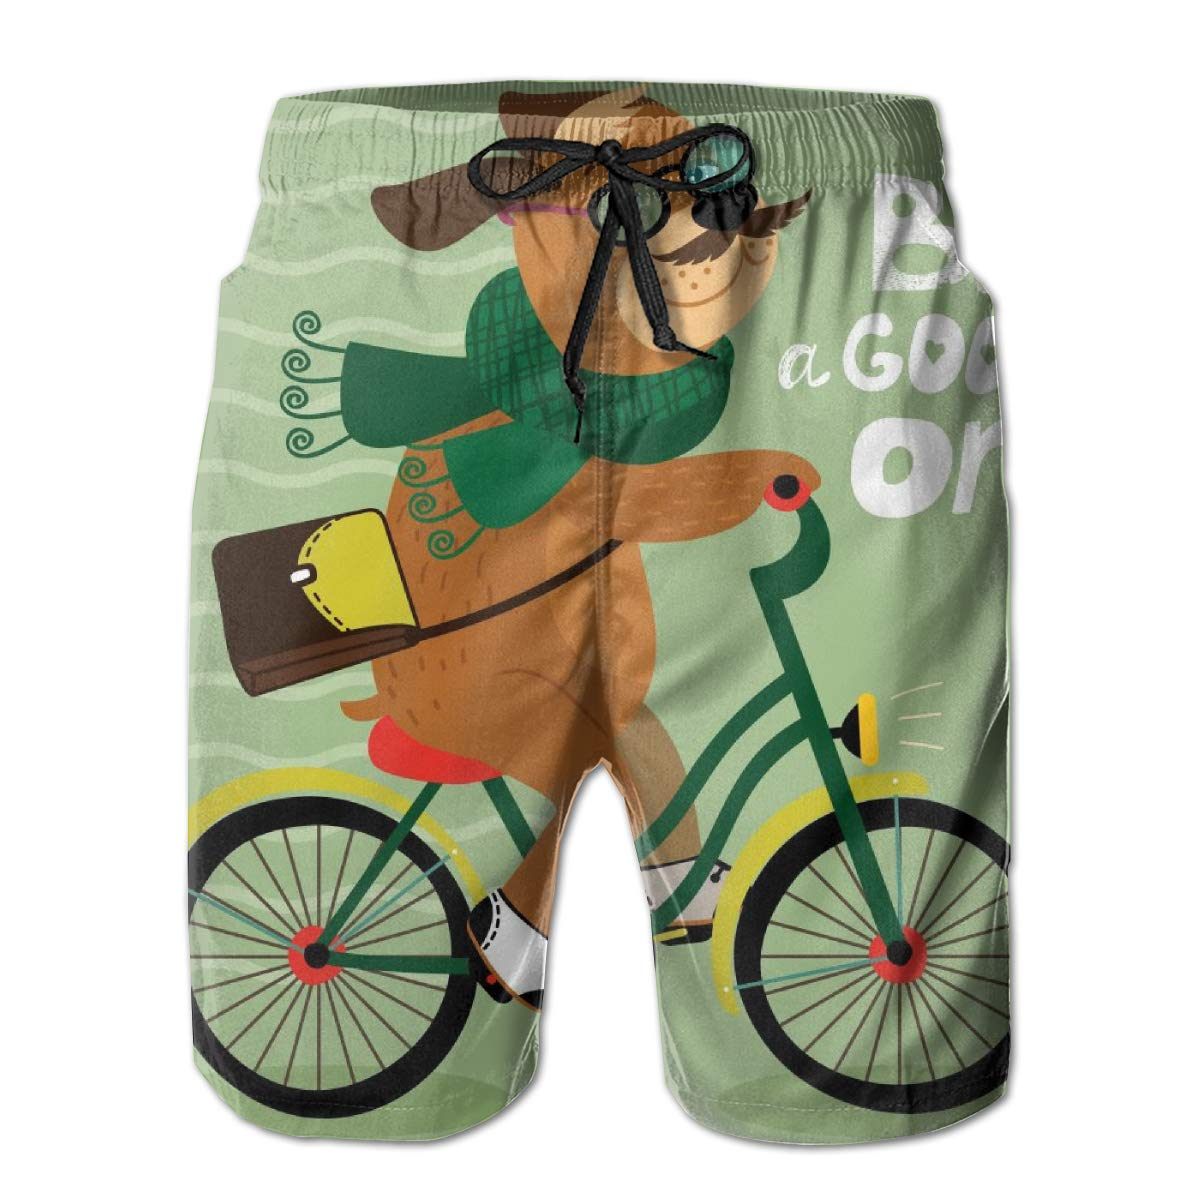 Mens Swim Trunks with Mesh Lining Pockets Cartoon Nerd Dog Riding Bicycle Boys Polyester Board Shorts Swimwear